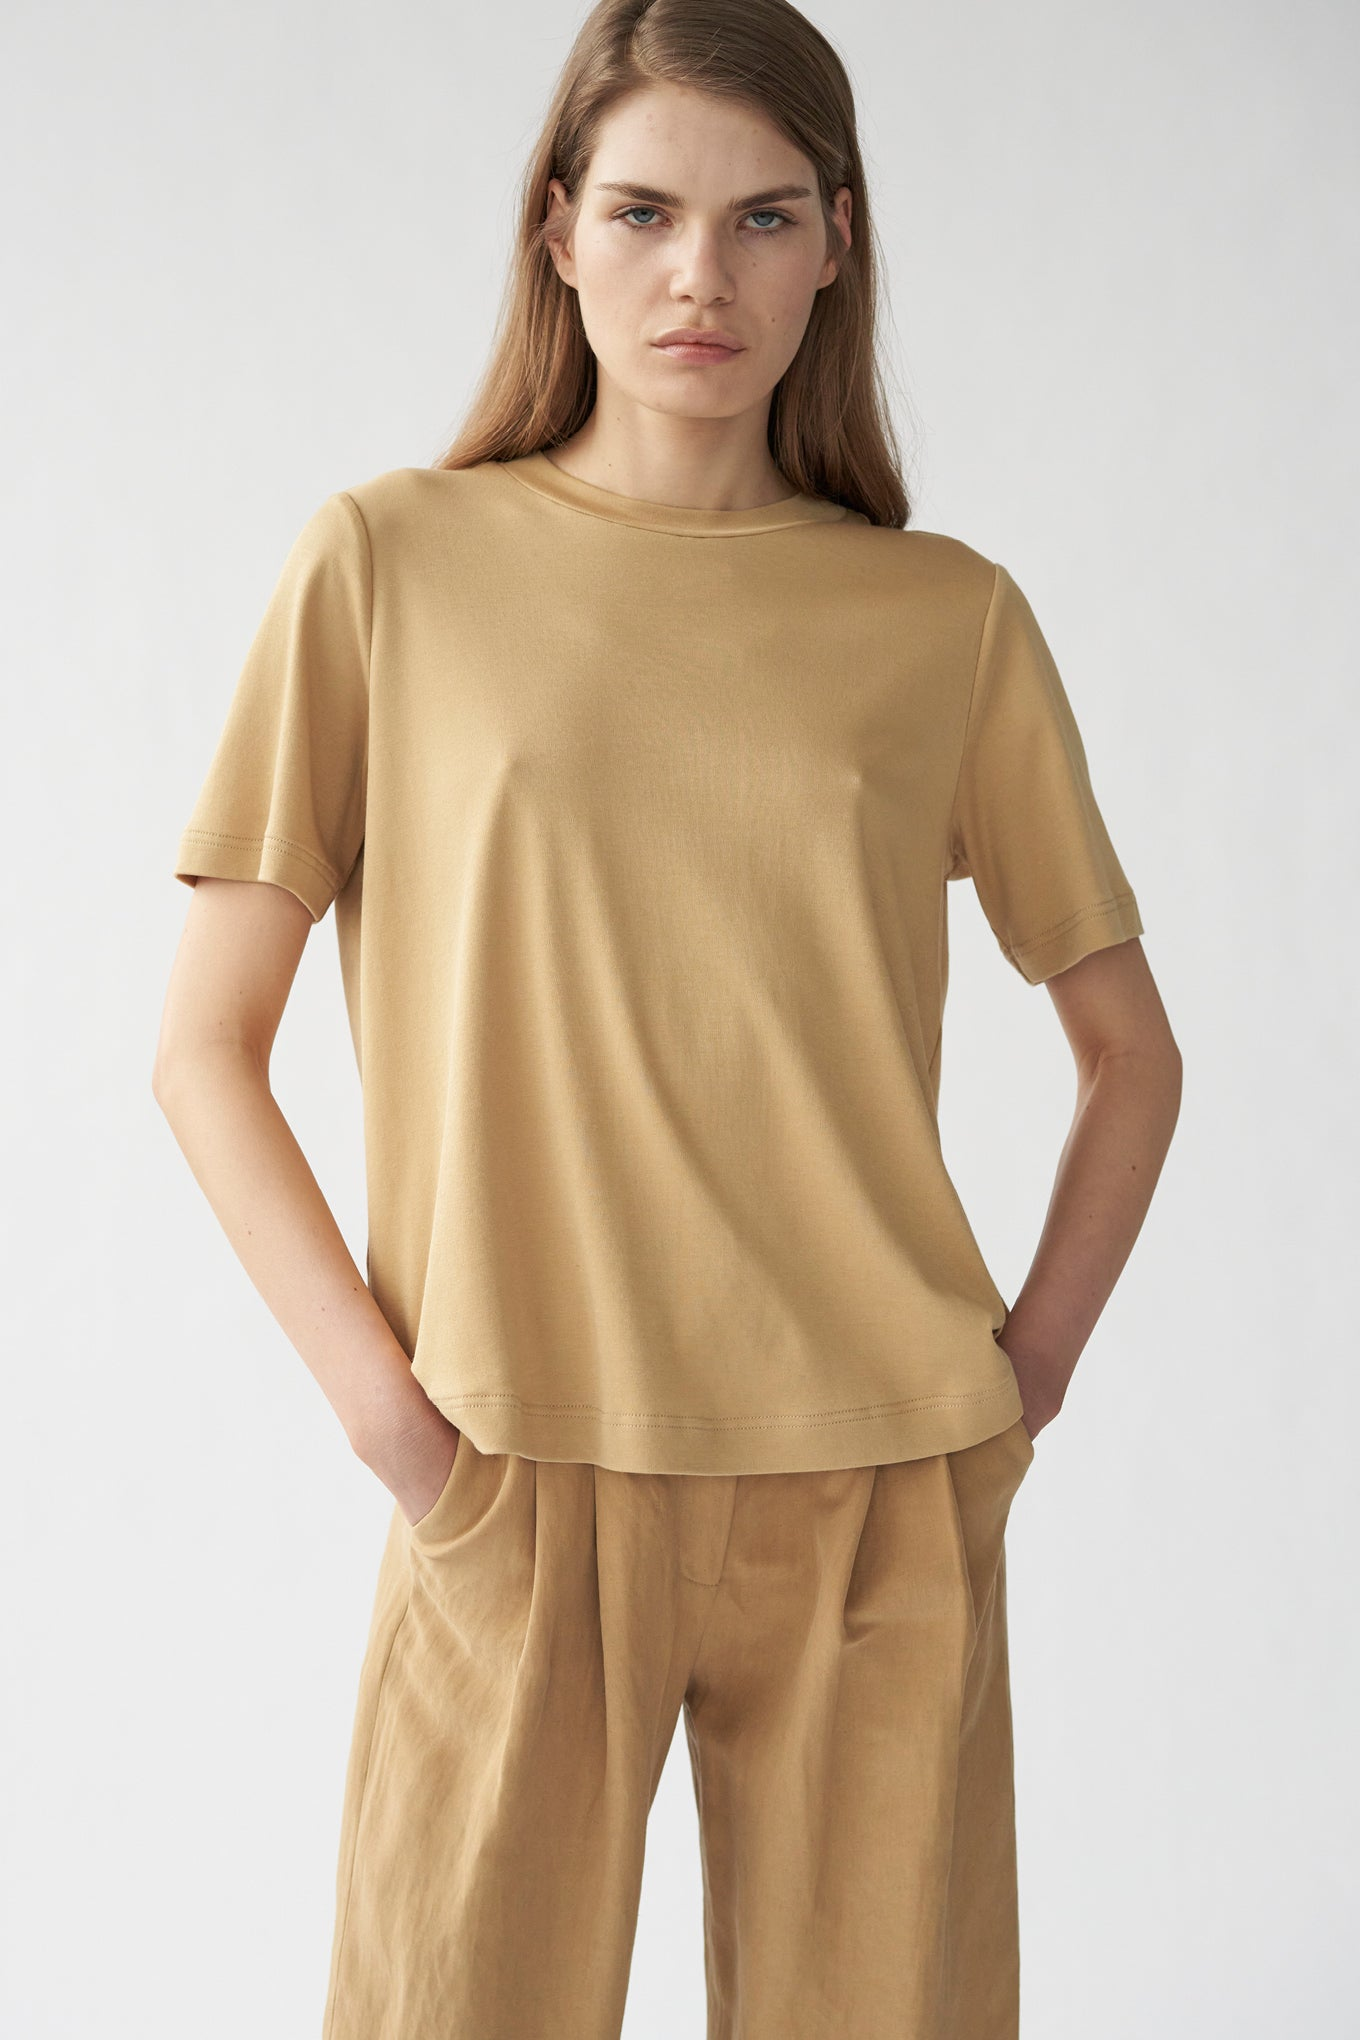 HAZE TEE - SUNKISSED BEIGE - SILK/COTTON JERSEY